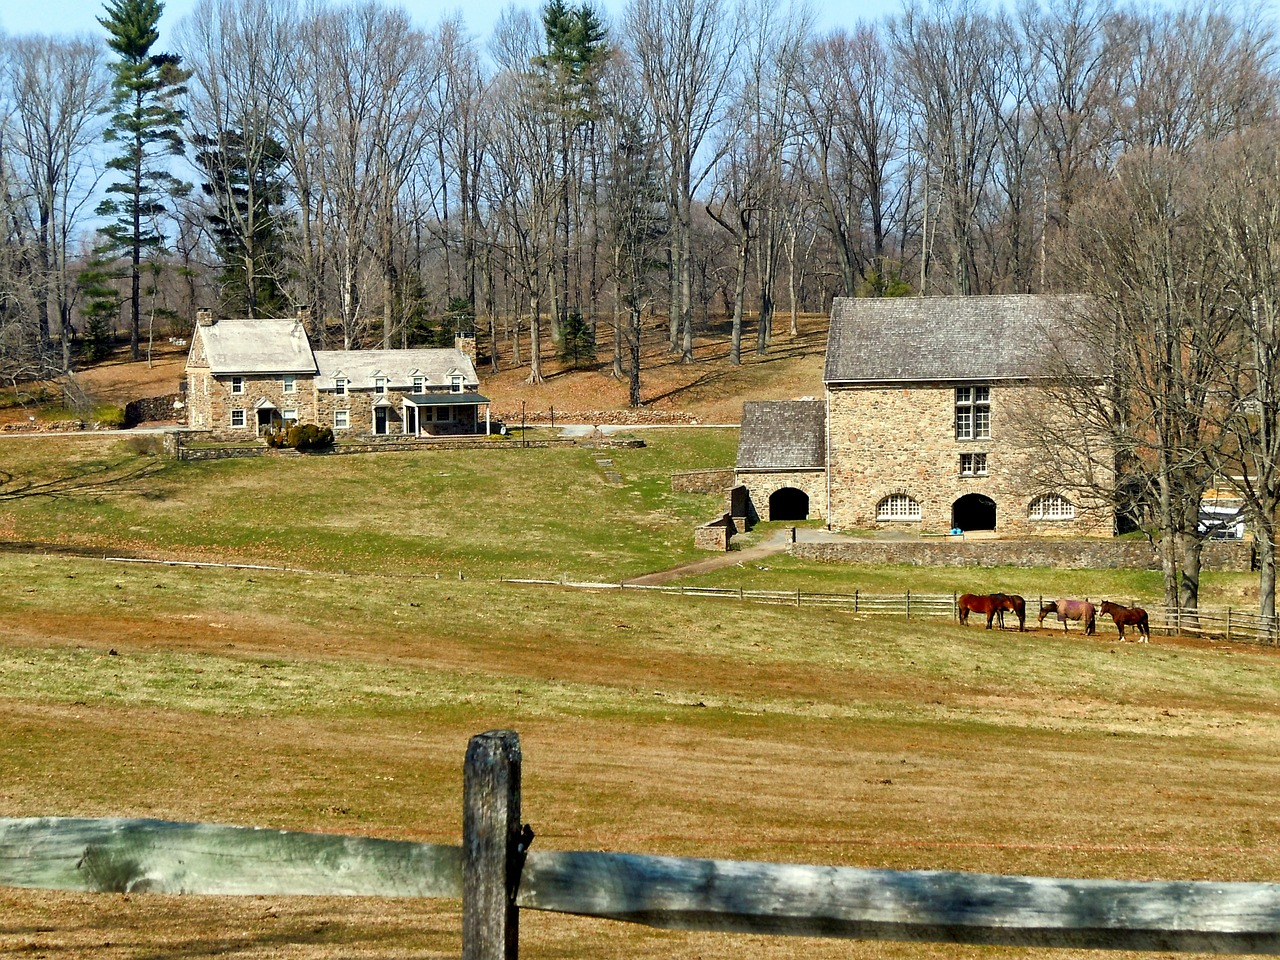 pennsylvania farm rural free photo